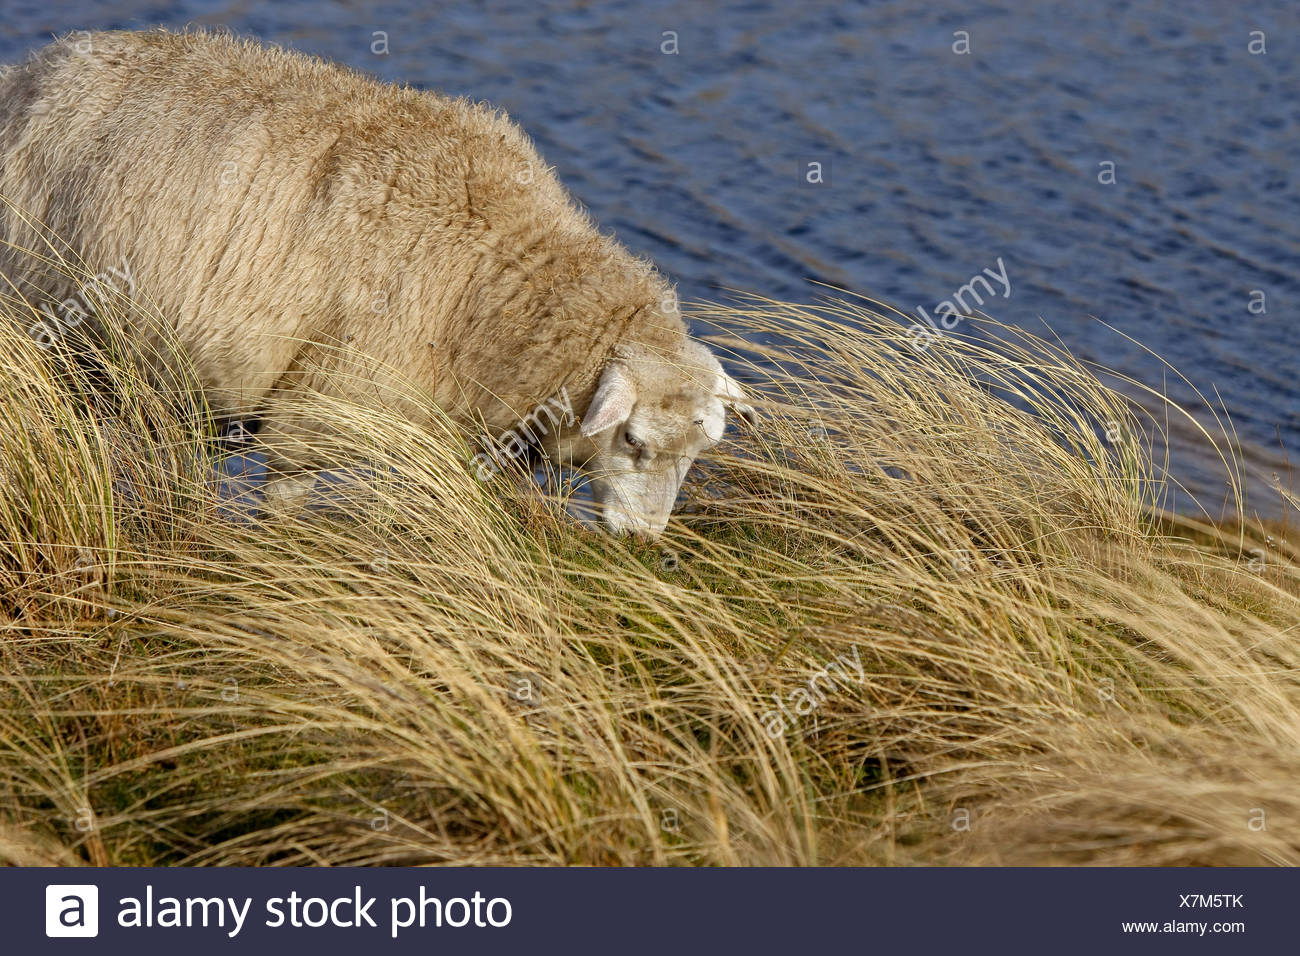 Sheep (Ovis aries) is grazing in long grass, Sylt, Germany, elevated view - Stock Image